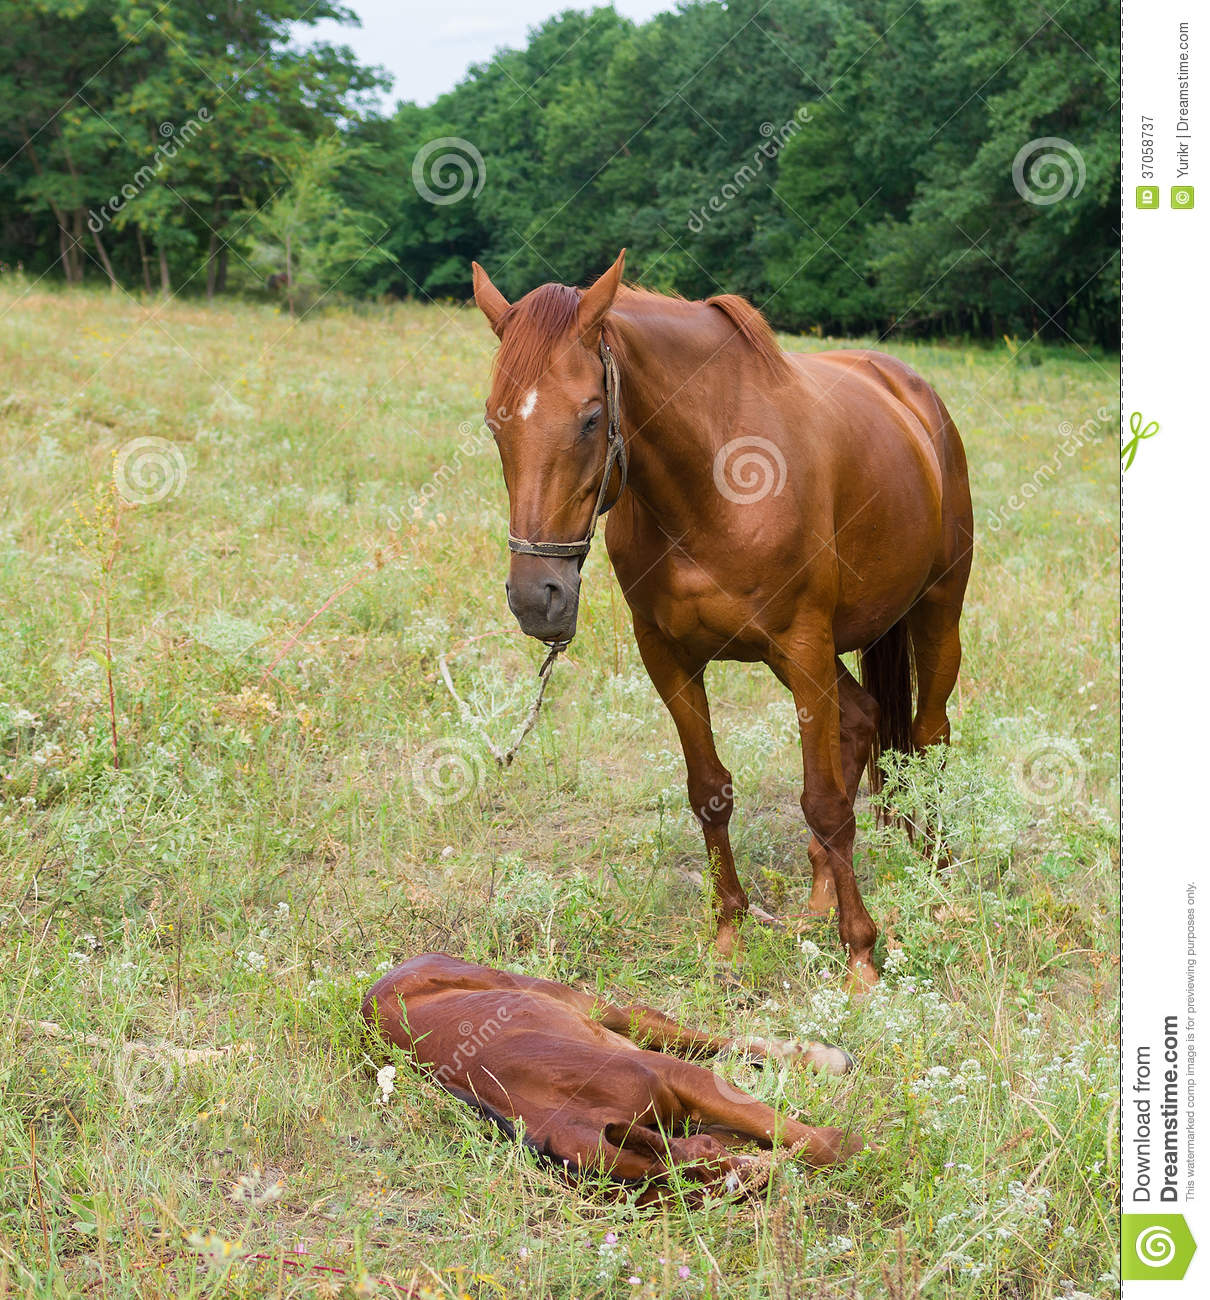 Mother Horse And Baby Foal Stock Image Image Of Grassland 37058737